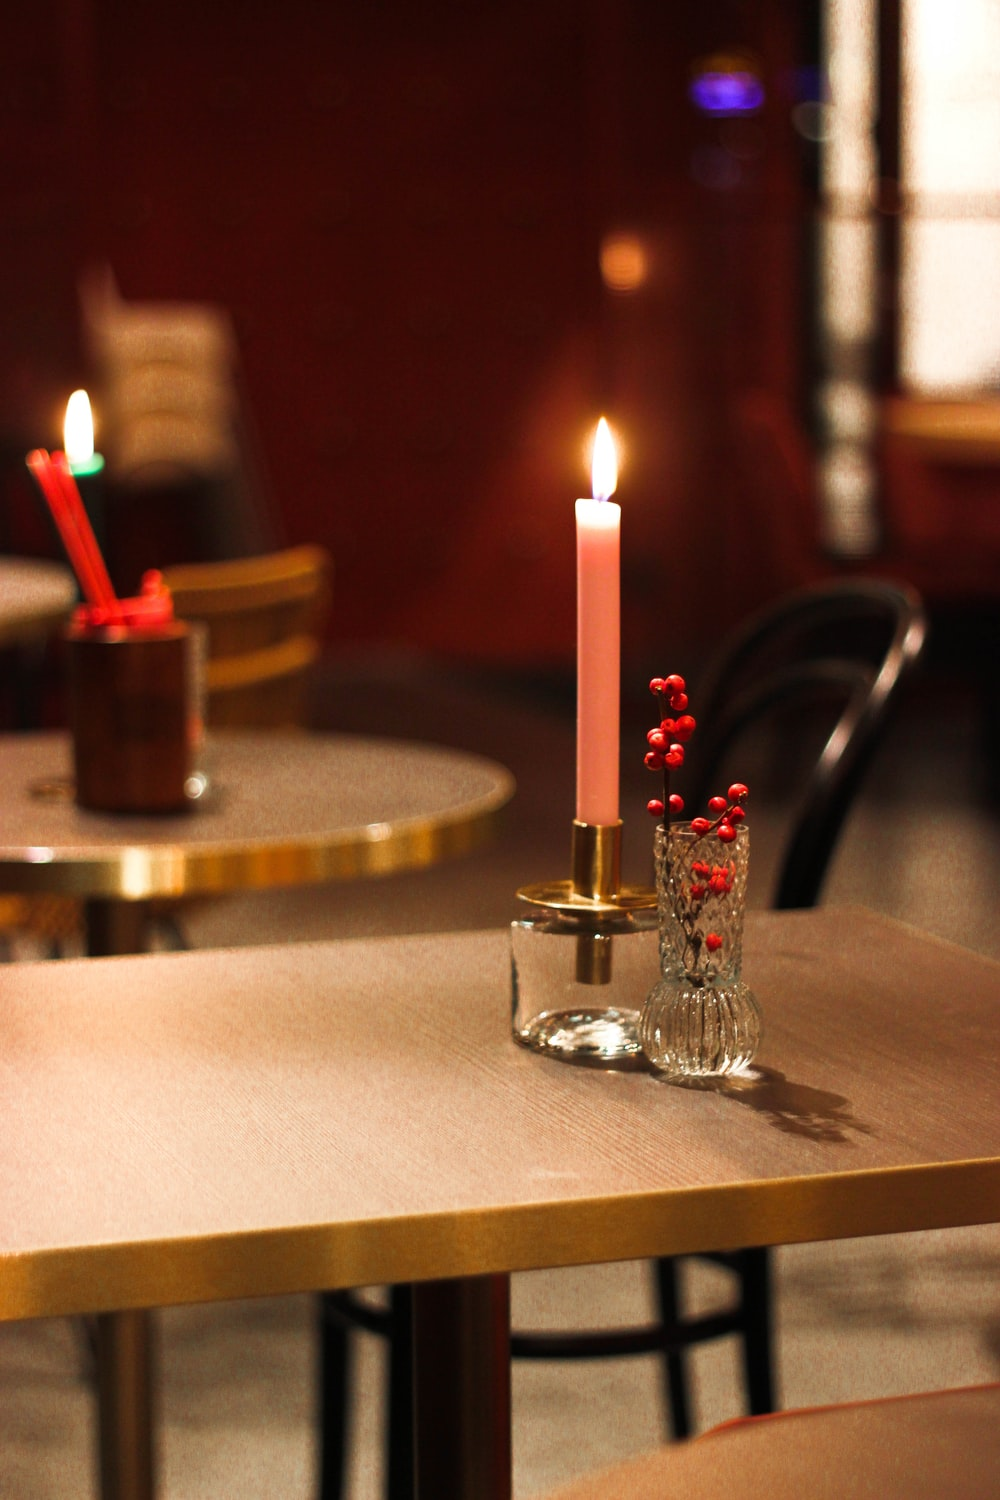 lit candle stick on holder on table